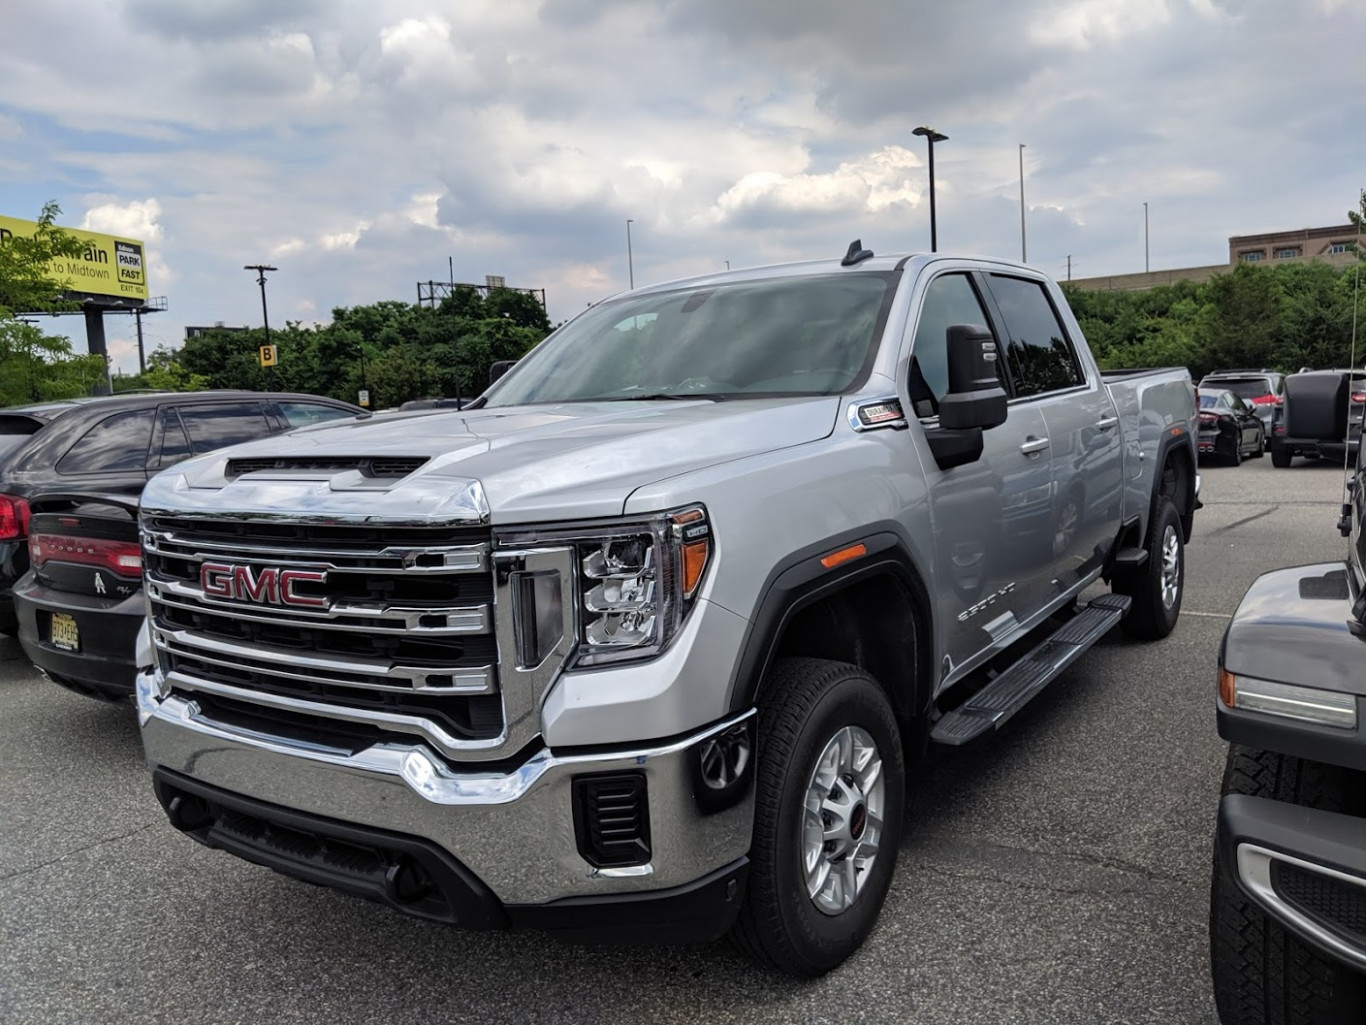 9 Chevy HD | Page 9 | Chevy and GMC Duramax Diesel Forum - 2020 gmc forum